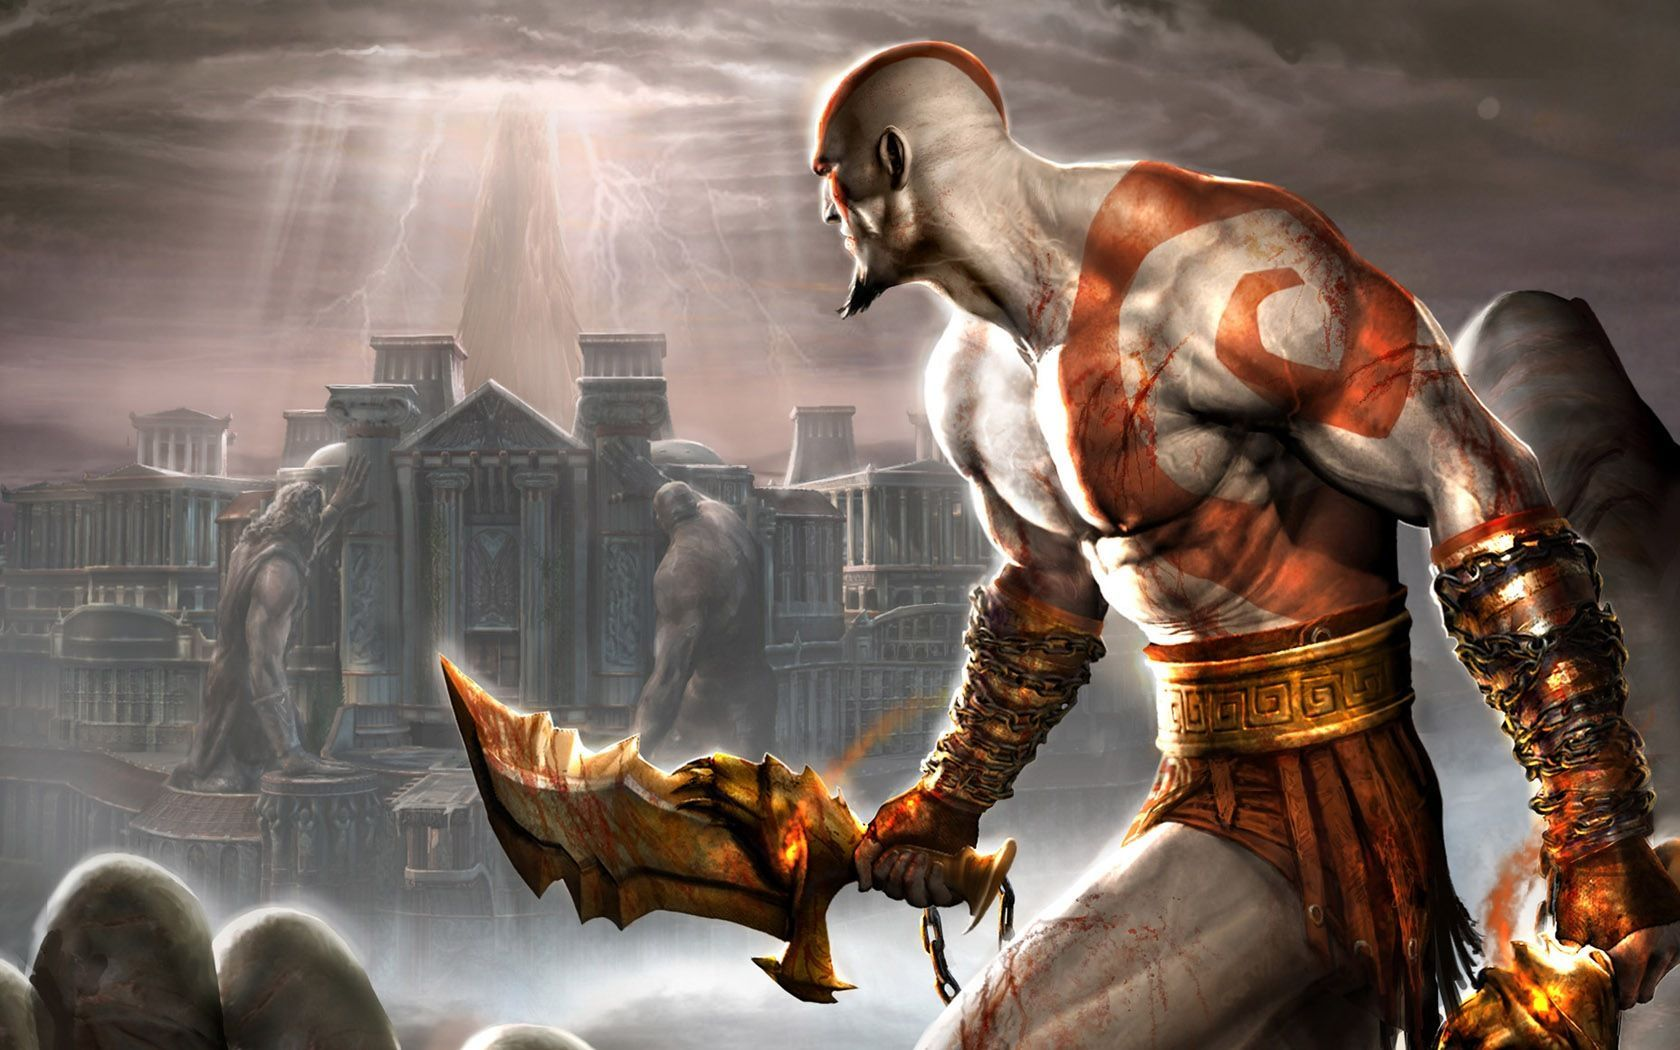 8228 - Megatest  ¿cuánto sabes de la saga God of War?